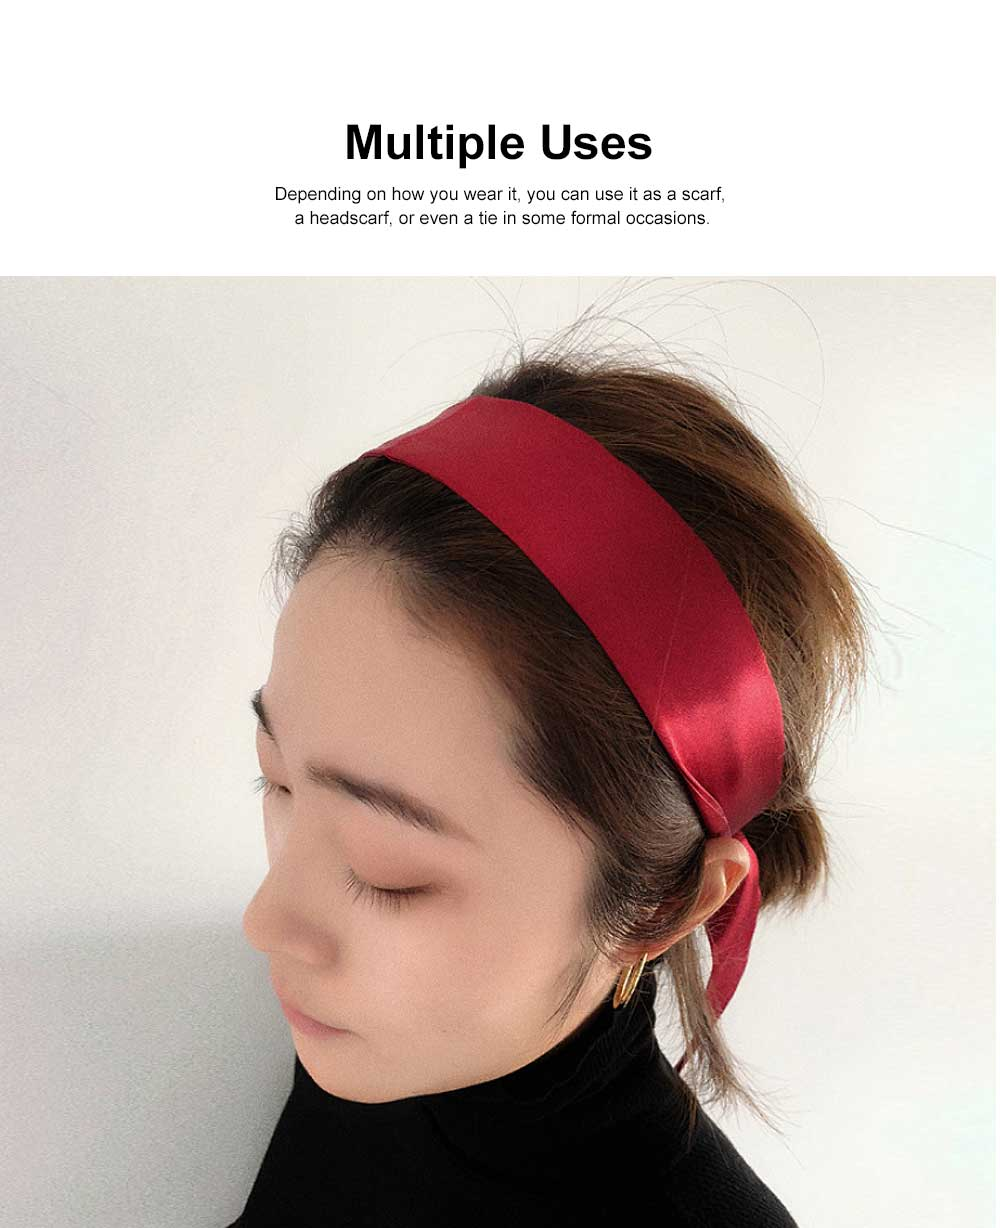 Multiple Uses Scarf for Women Used as Hair Band or Tie, Casual Scarf with Bright Pure Color 3